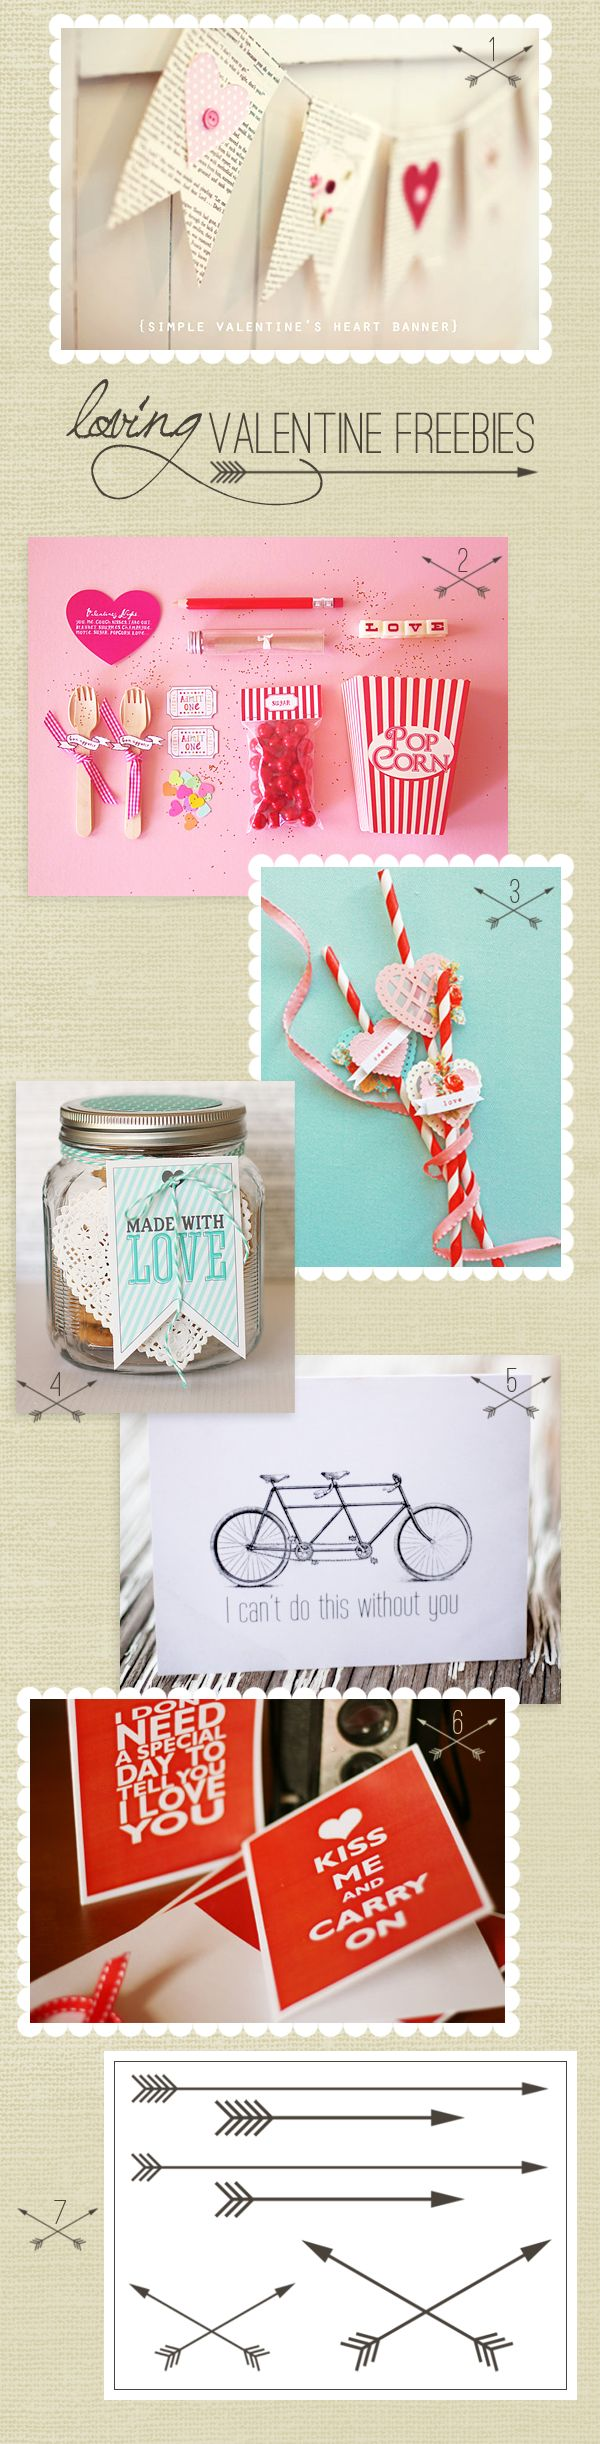 best valentines images on pinterest valentine ideas craft and